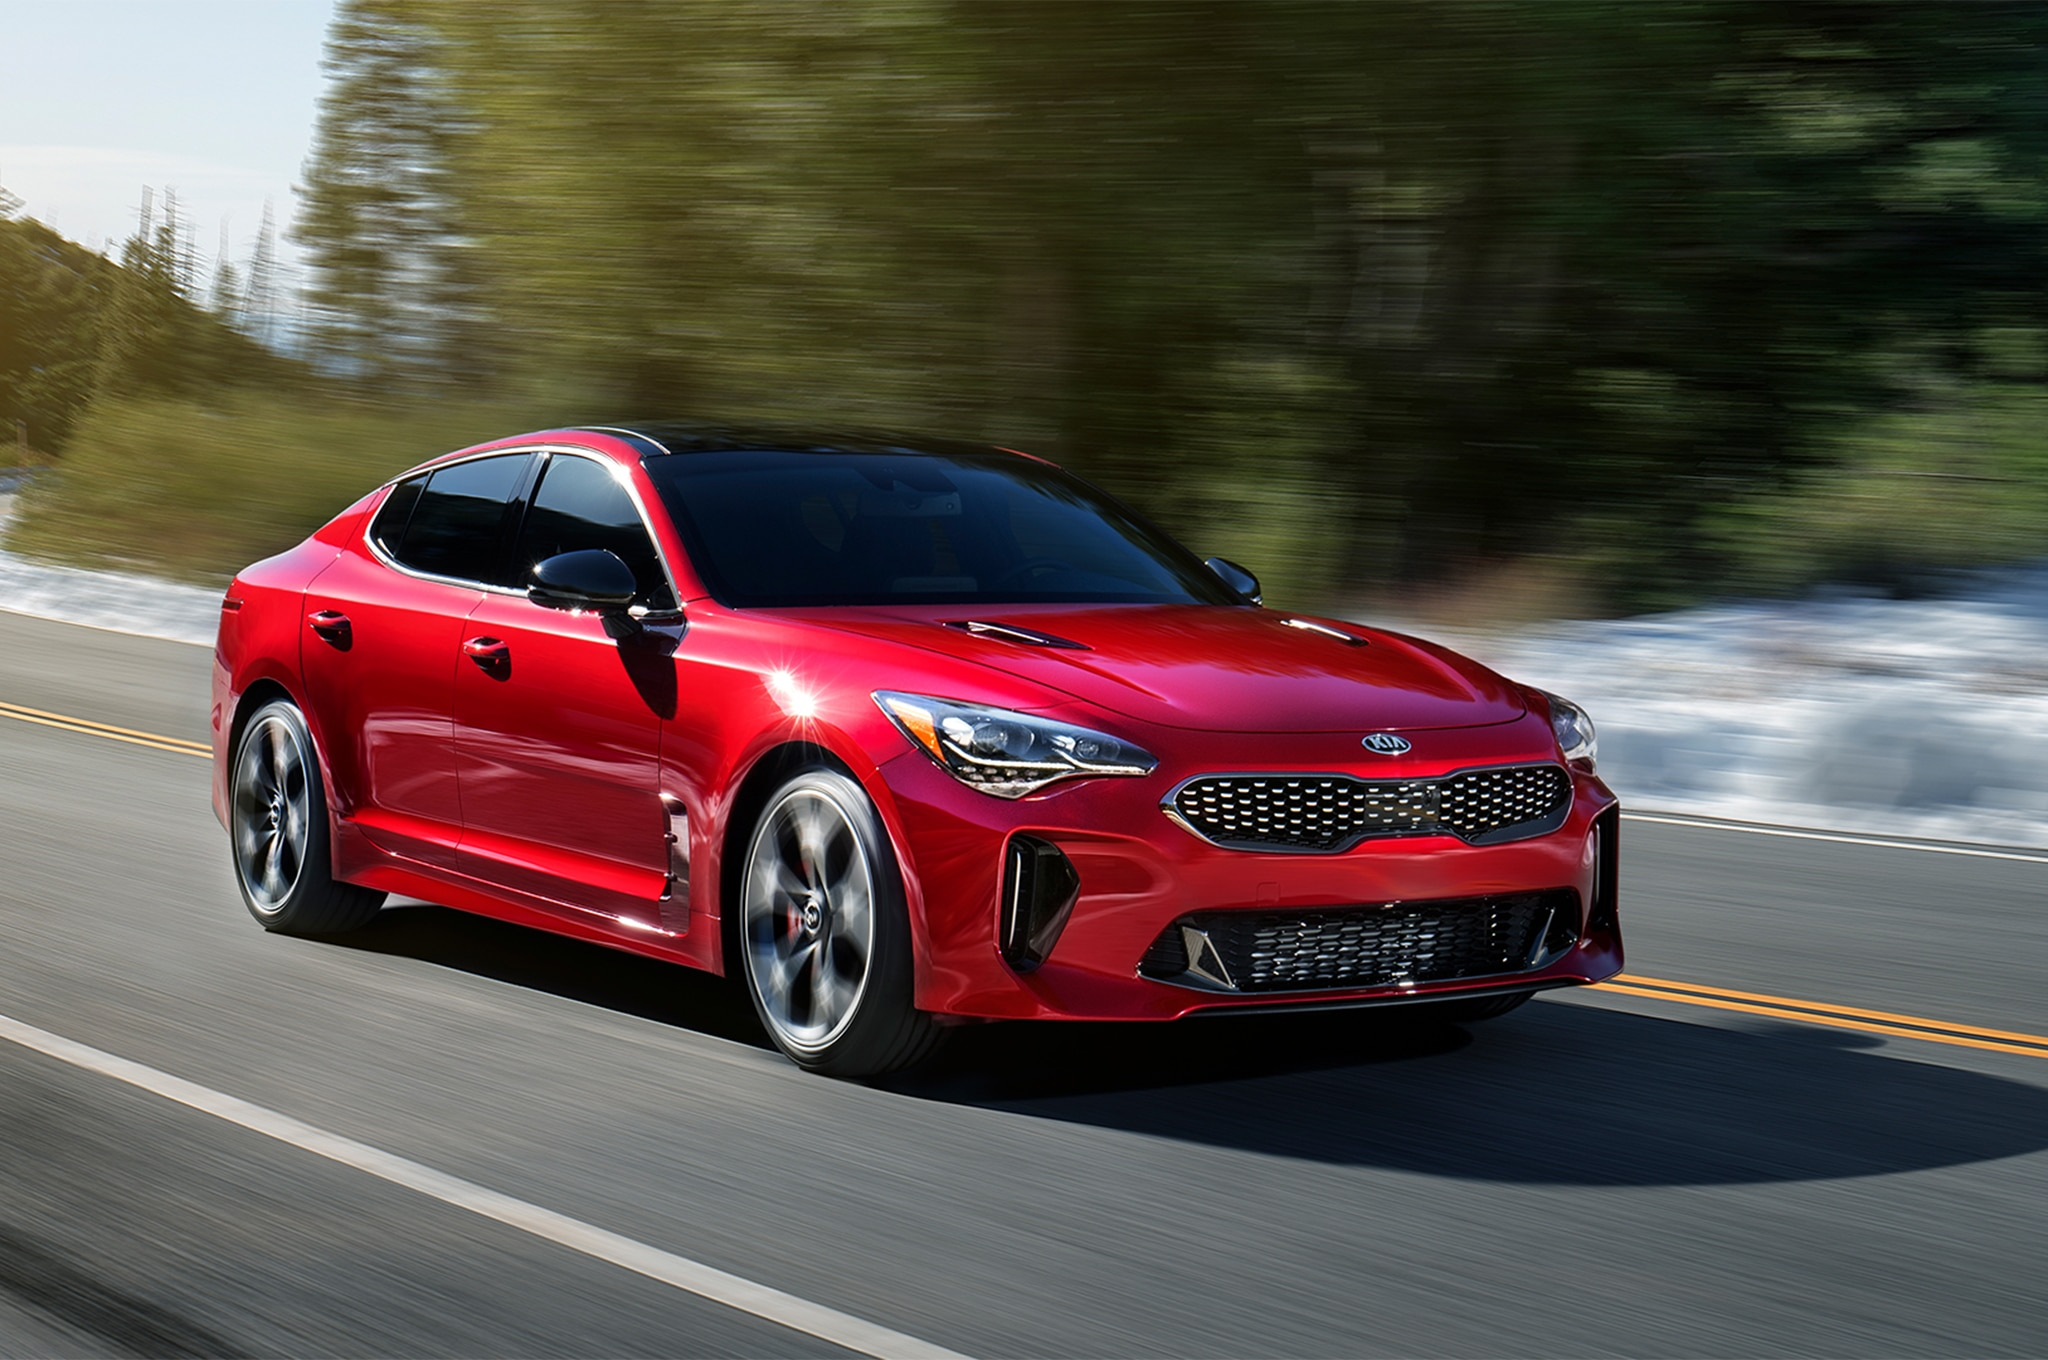 2018 Kia Stinger GT Front Three Quarter In Motion 04